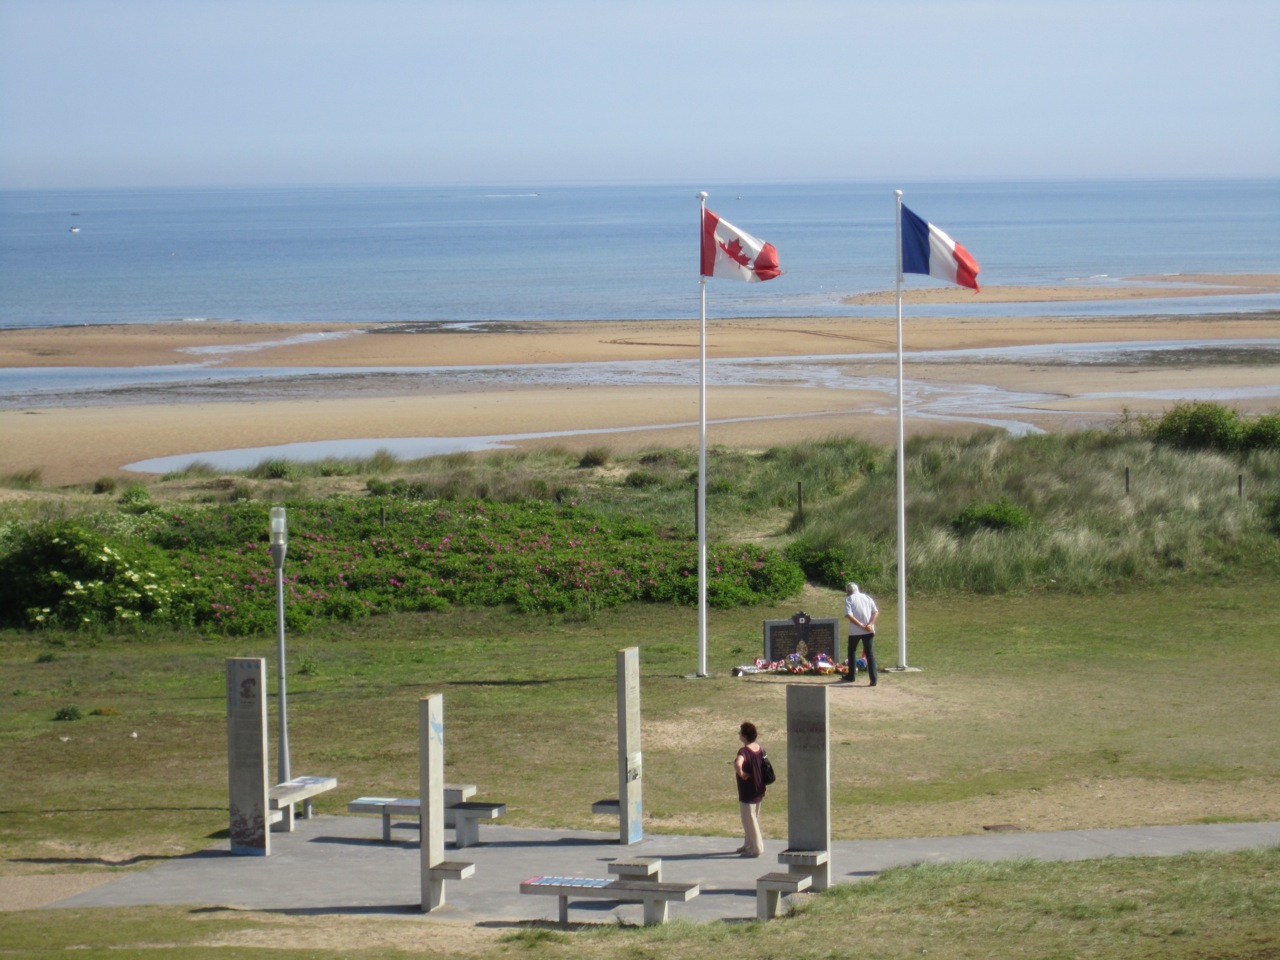 Colour photo. A view of Juno Park, the beach, and a small memorial